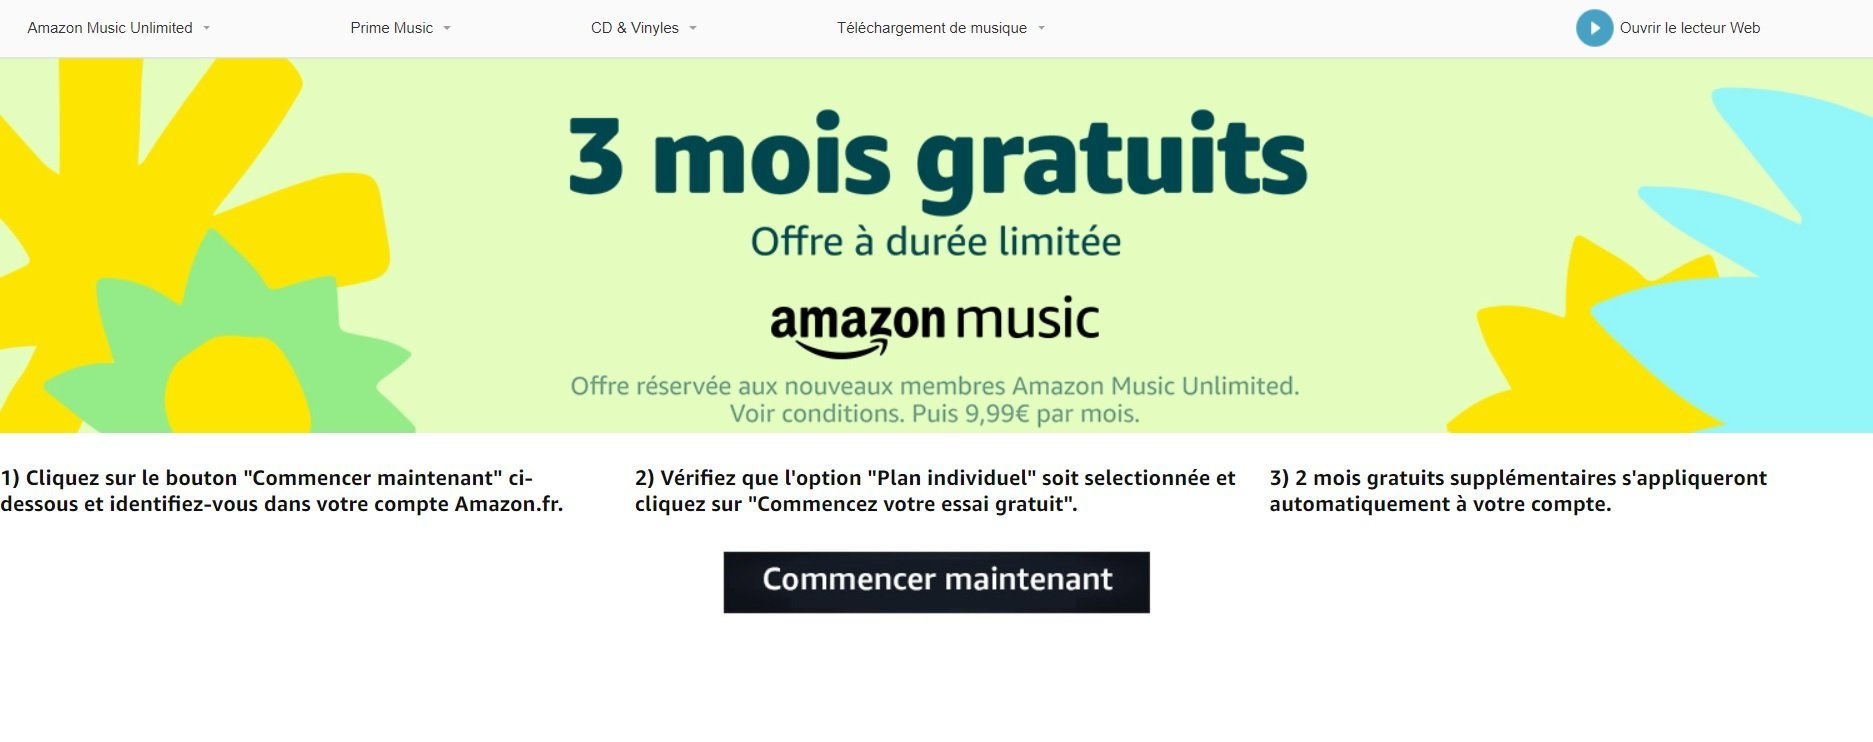 🔥 Bon plan : Amazon Music Unlimited gratuit pendant 3 mois sans engagement